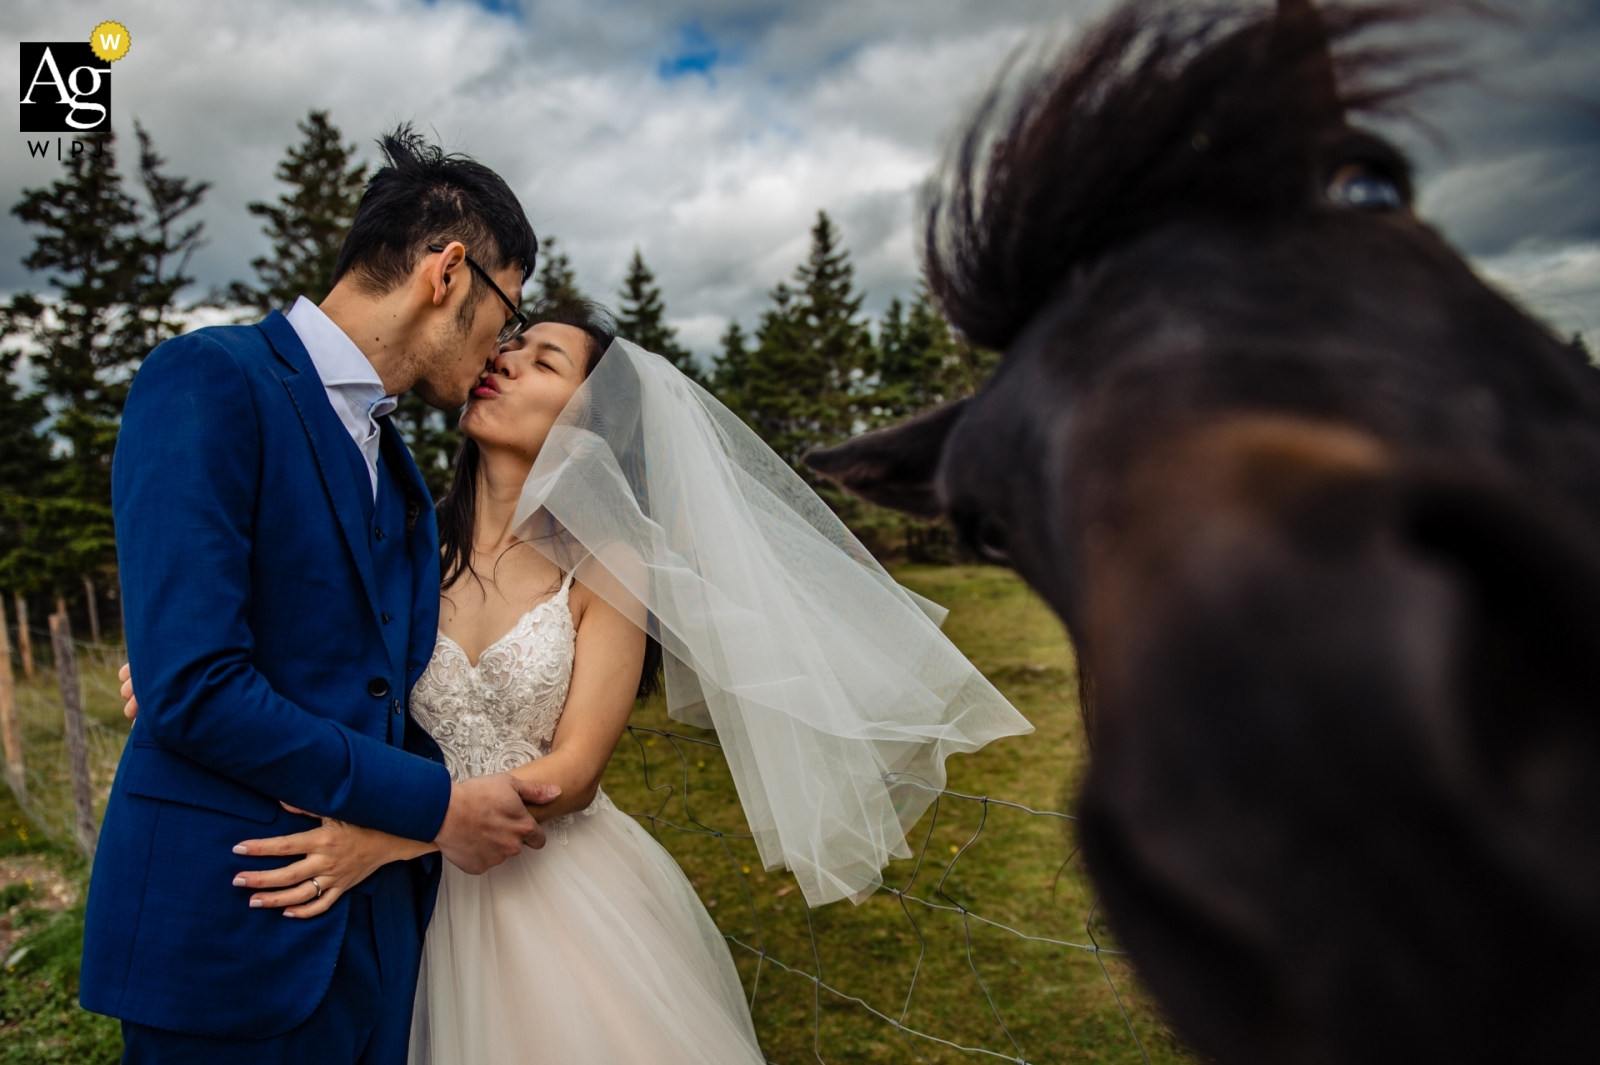 Doctors House - Newfoundland | Bride and groom get Photobombed during portrait session near a horse